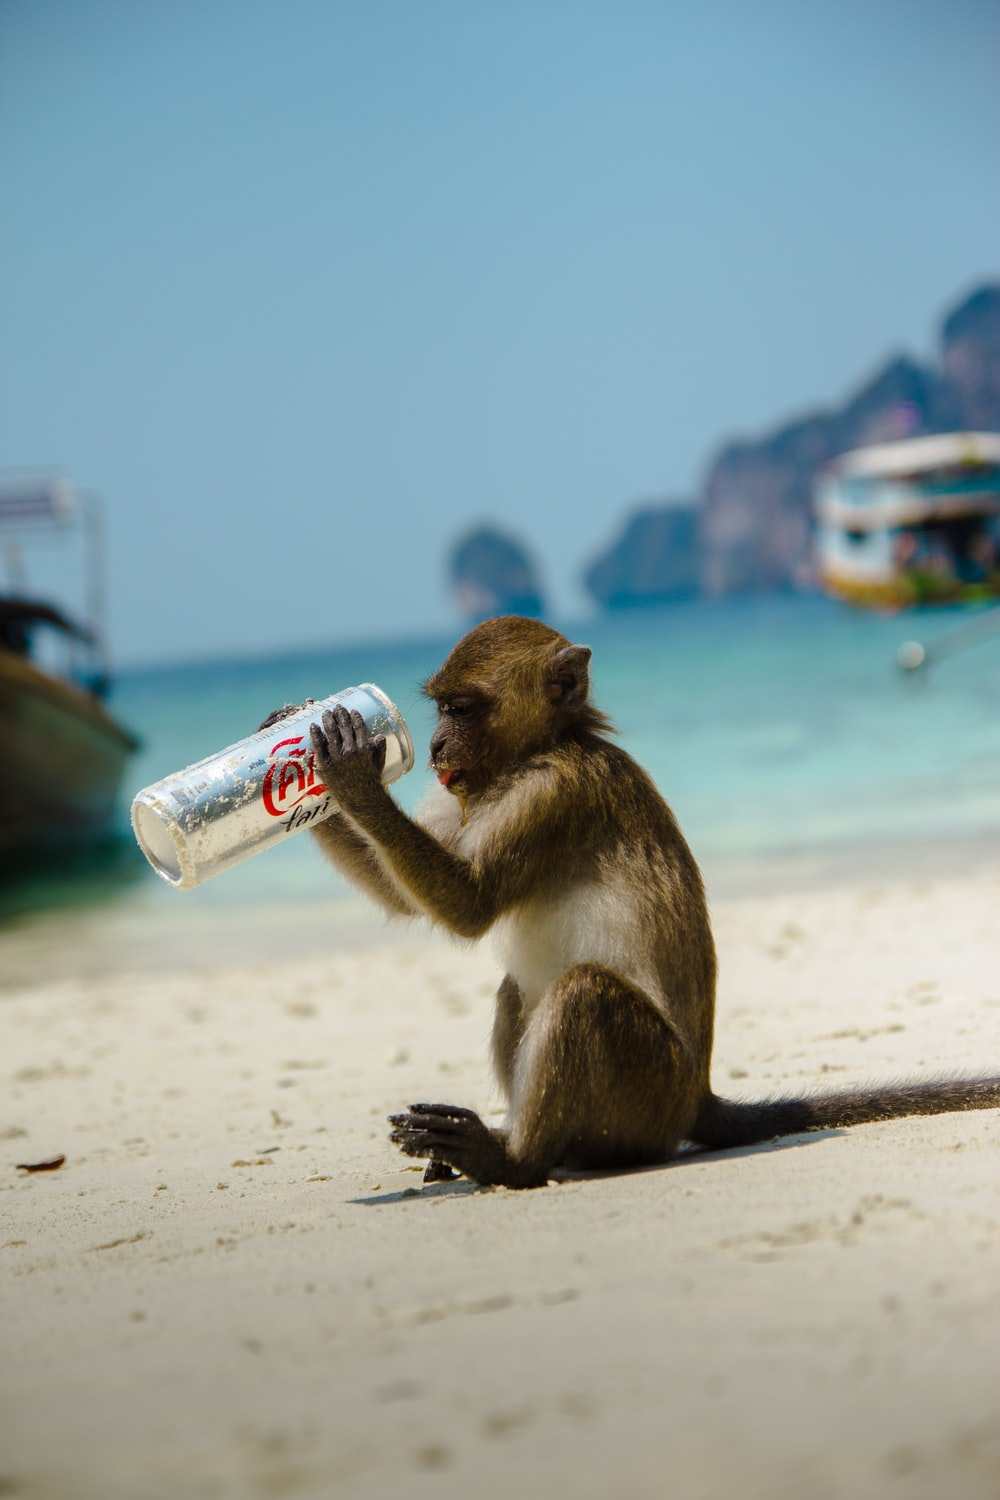 brown primate holding Coca-Cola can